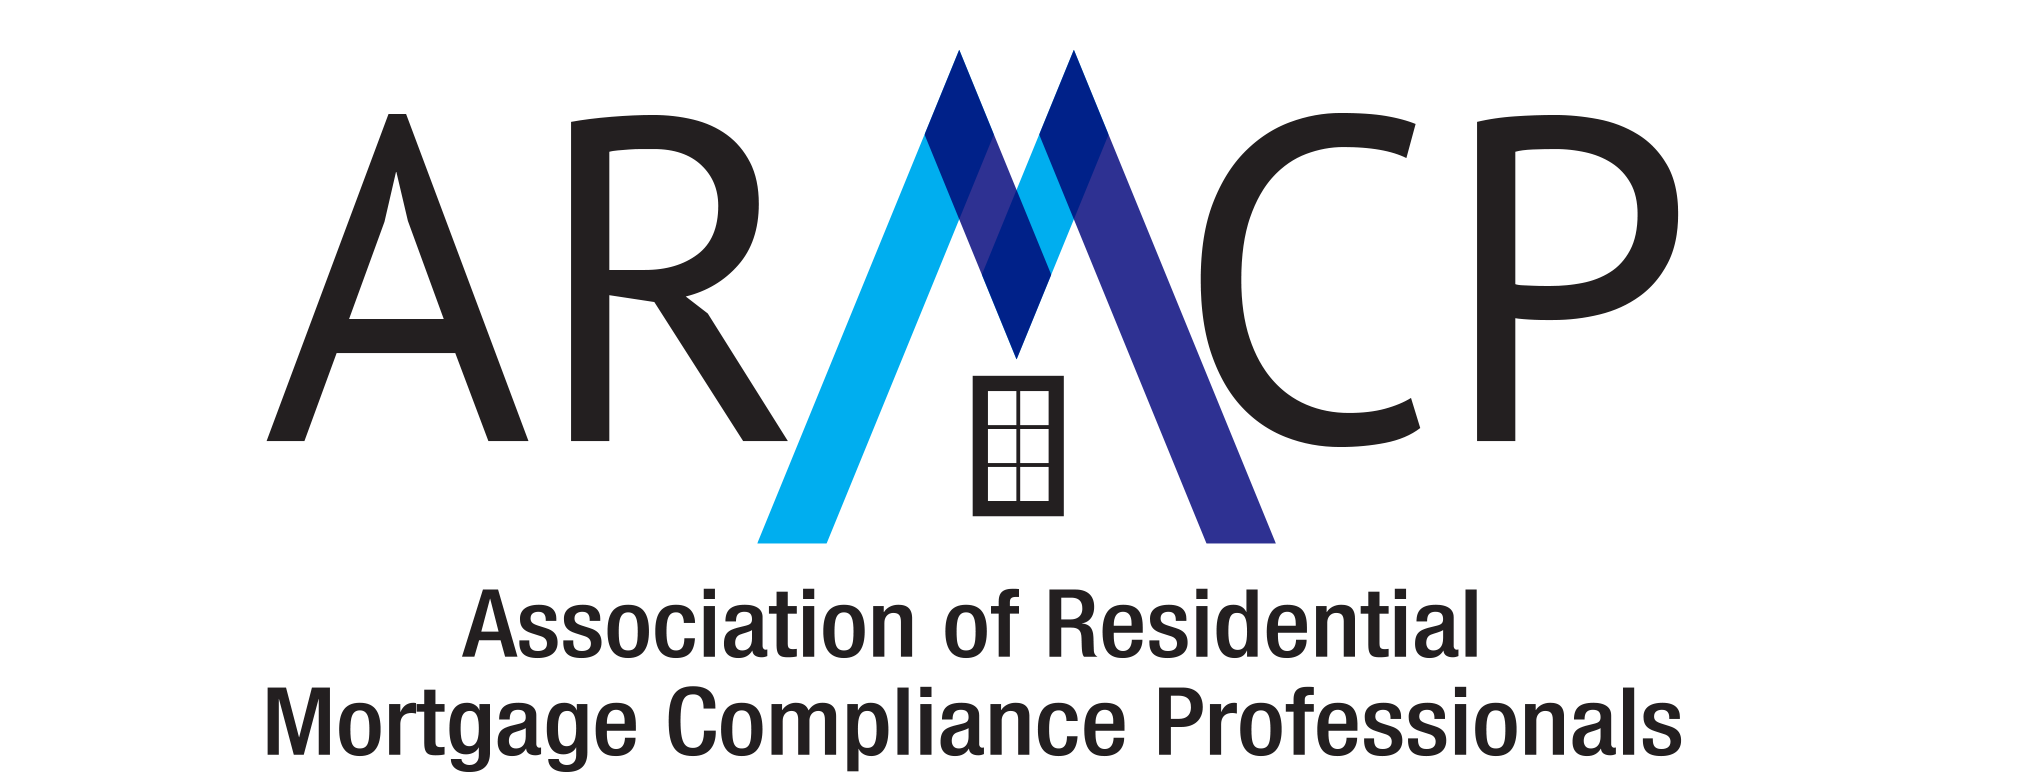 Association of Residential Mortgage Compliance Professionals | ARMCP